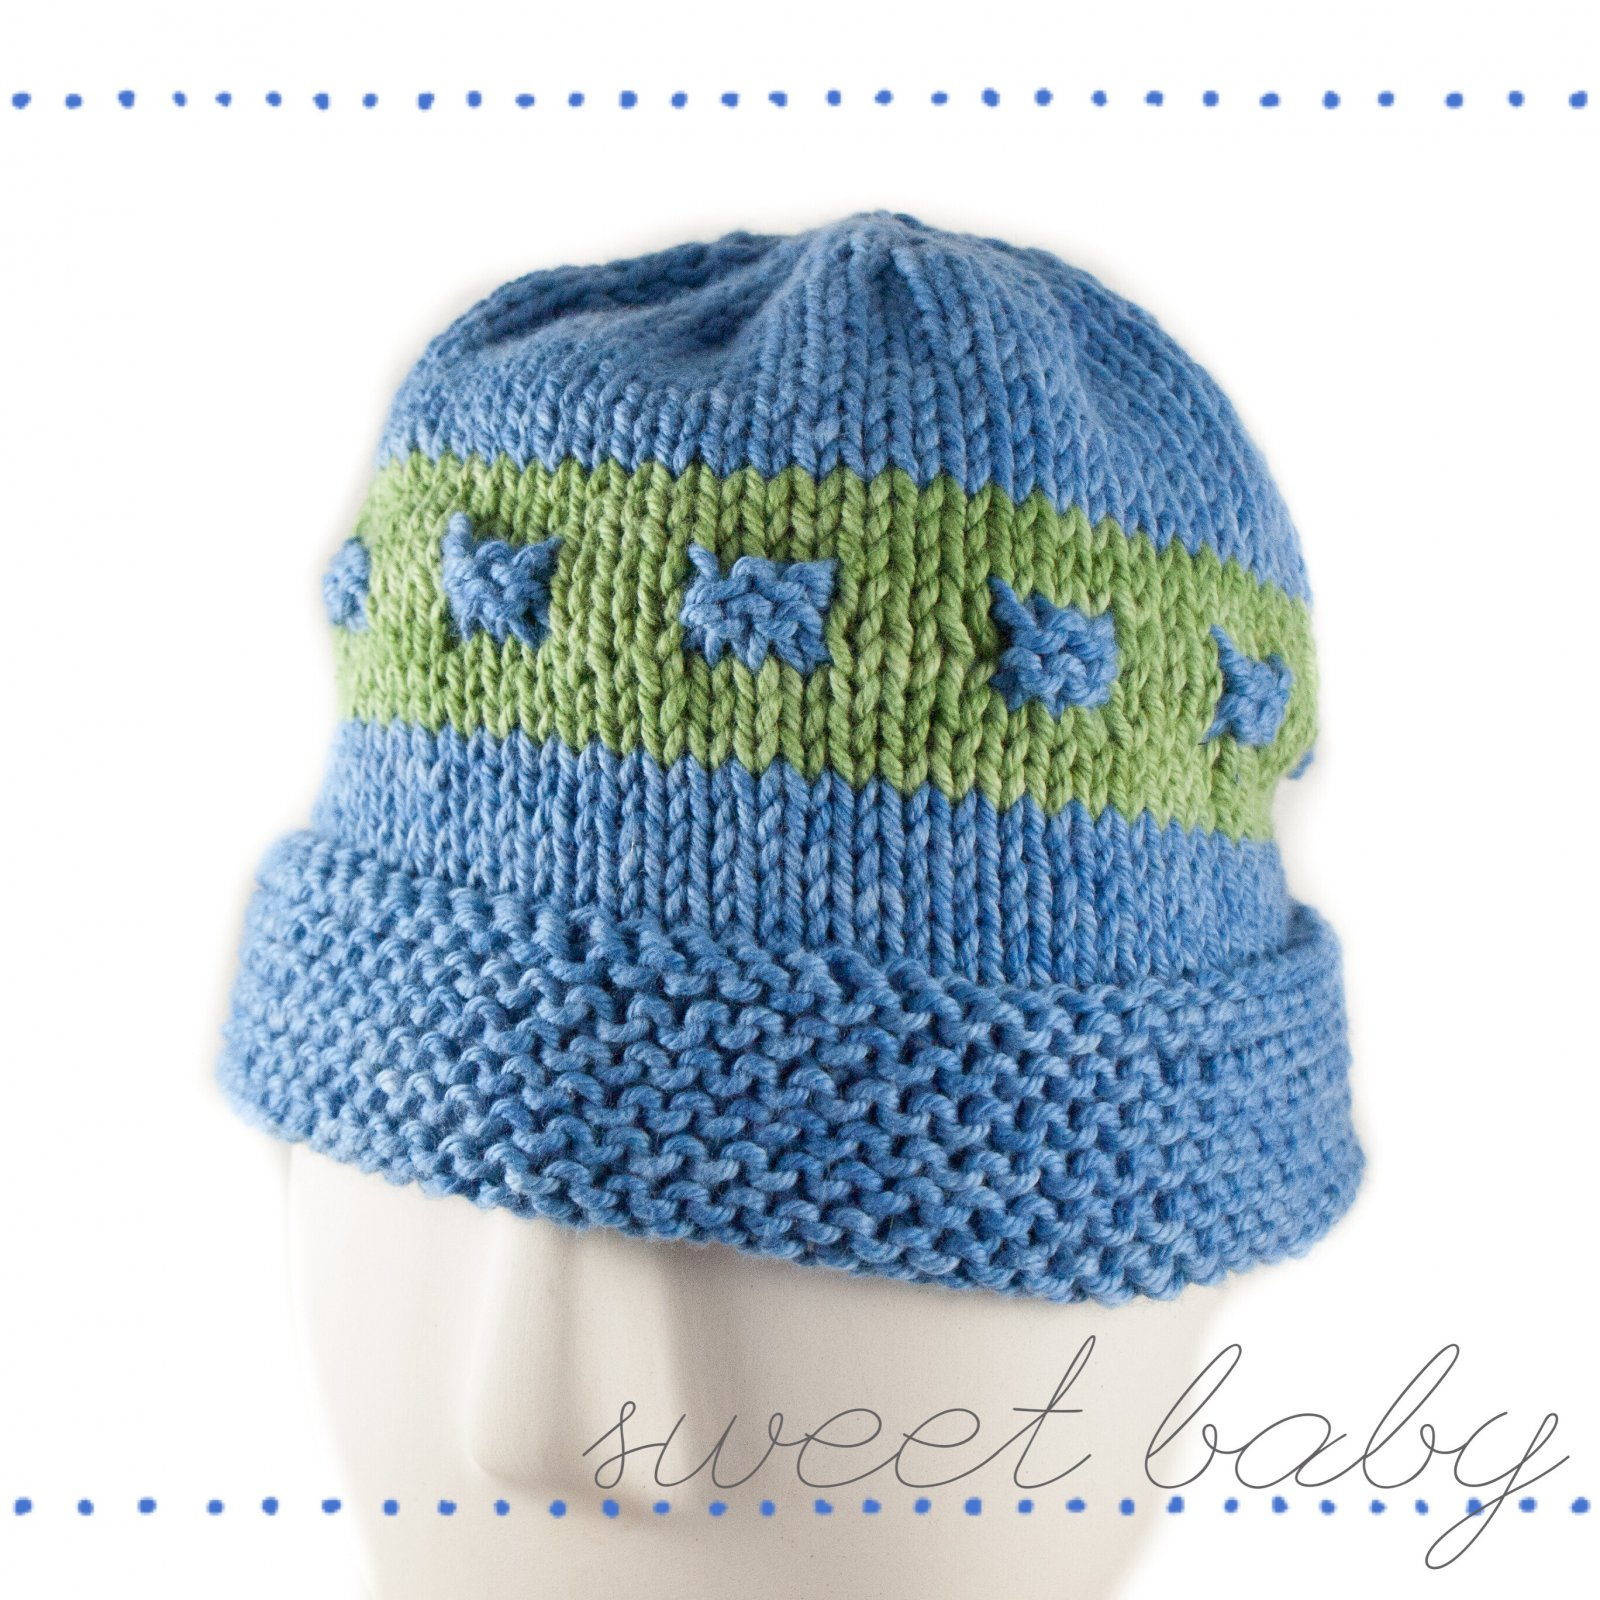 knot another hat dash hat (download)